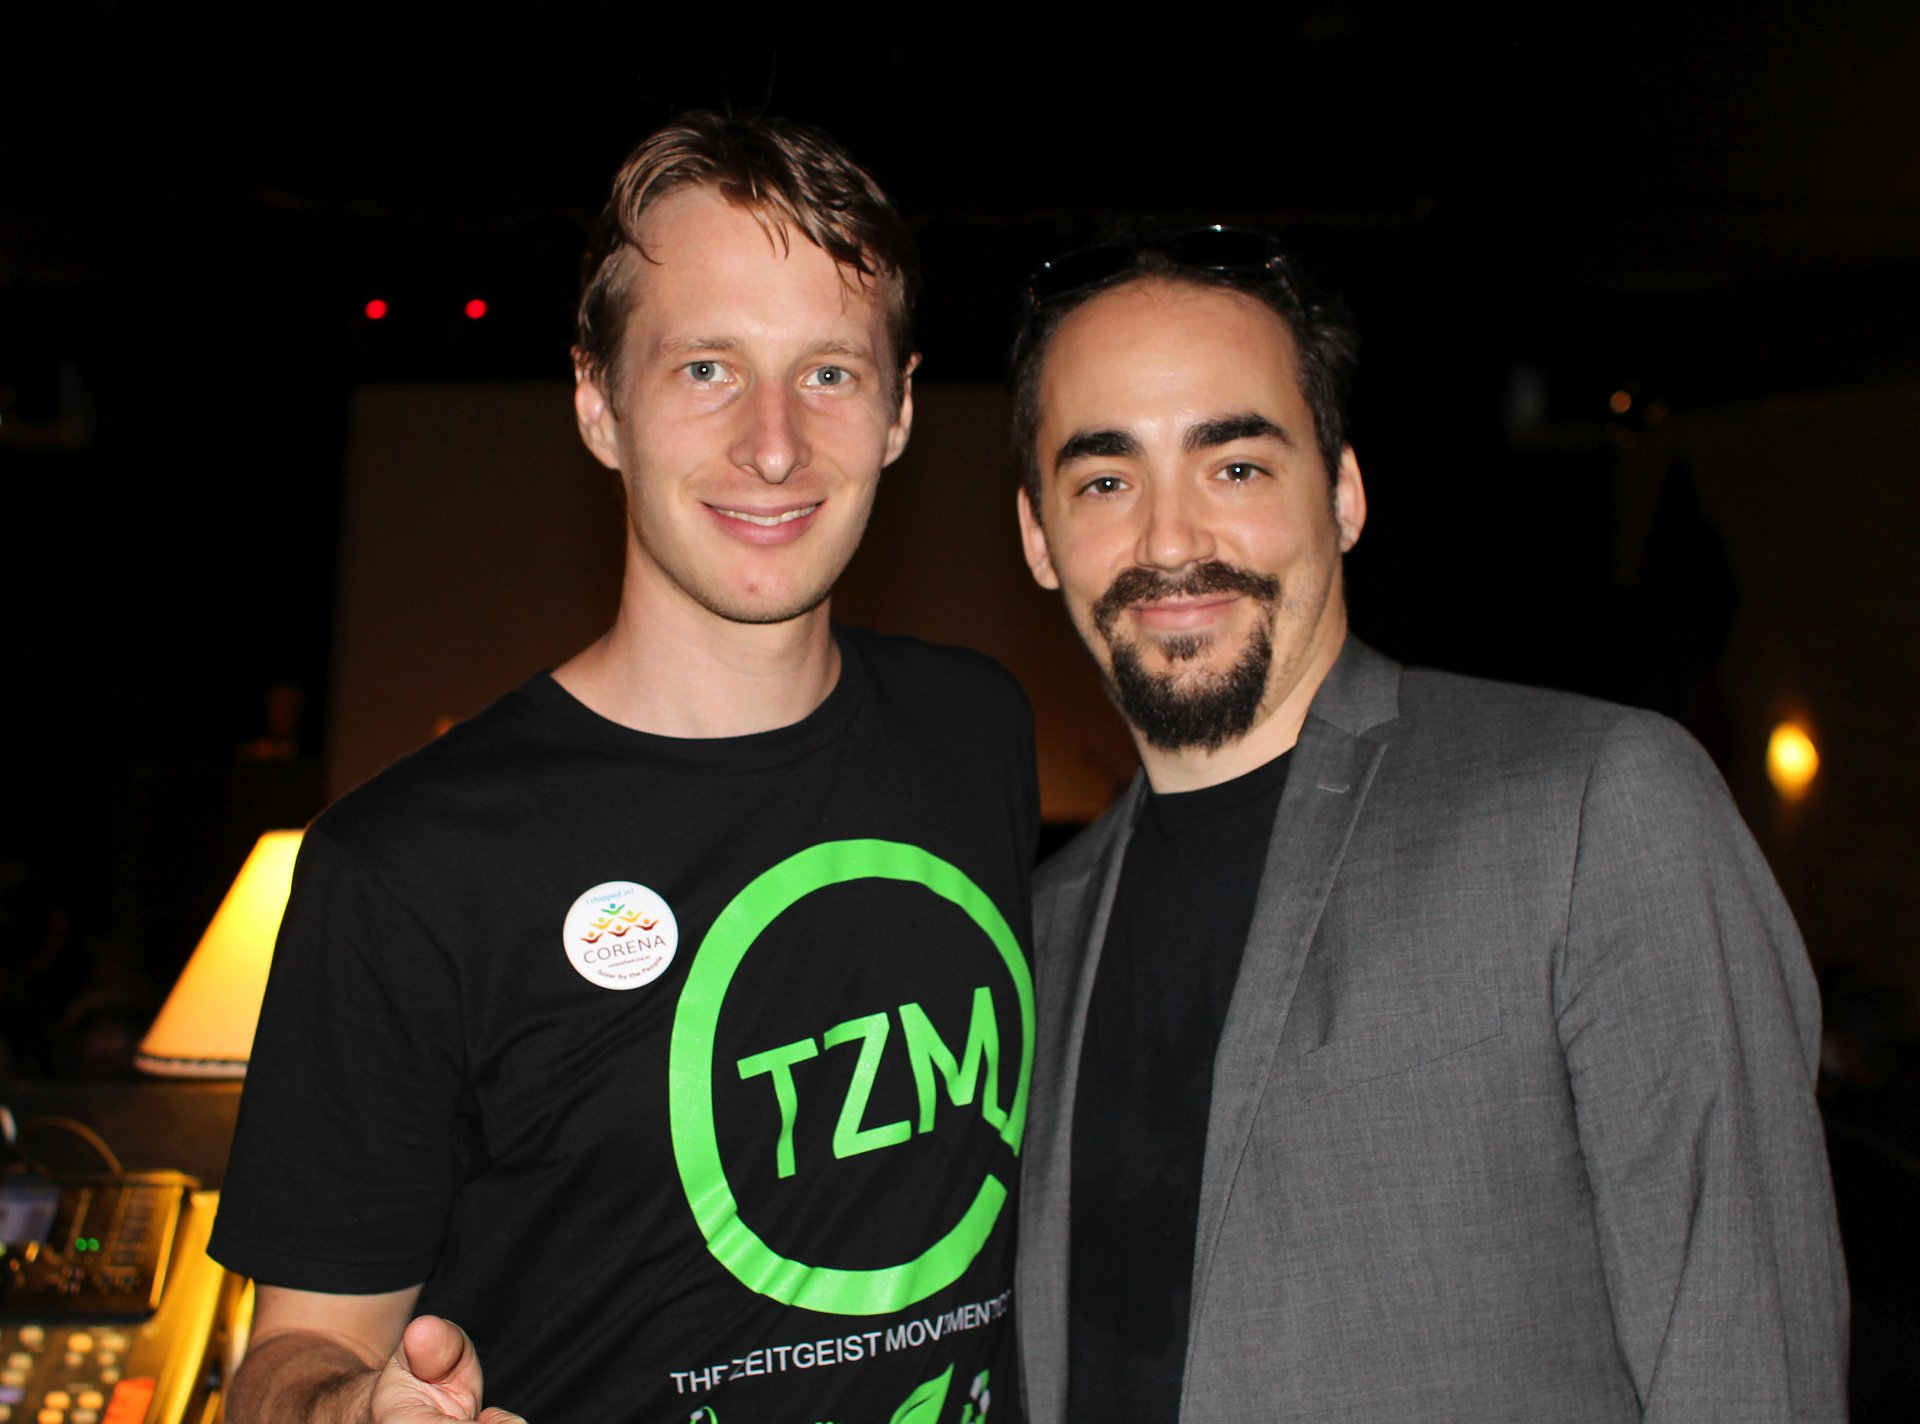 Michael Kubler and Peter Joseph at the ZDay 2017 global event in Brisbane.